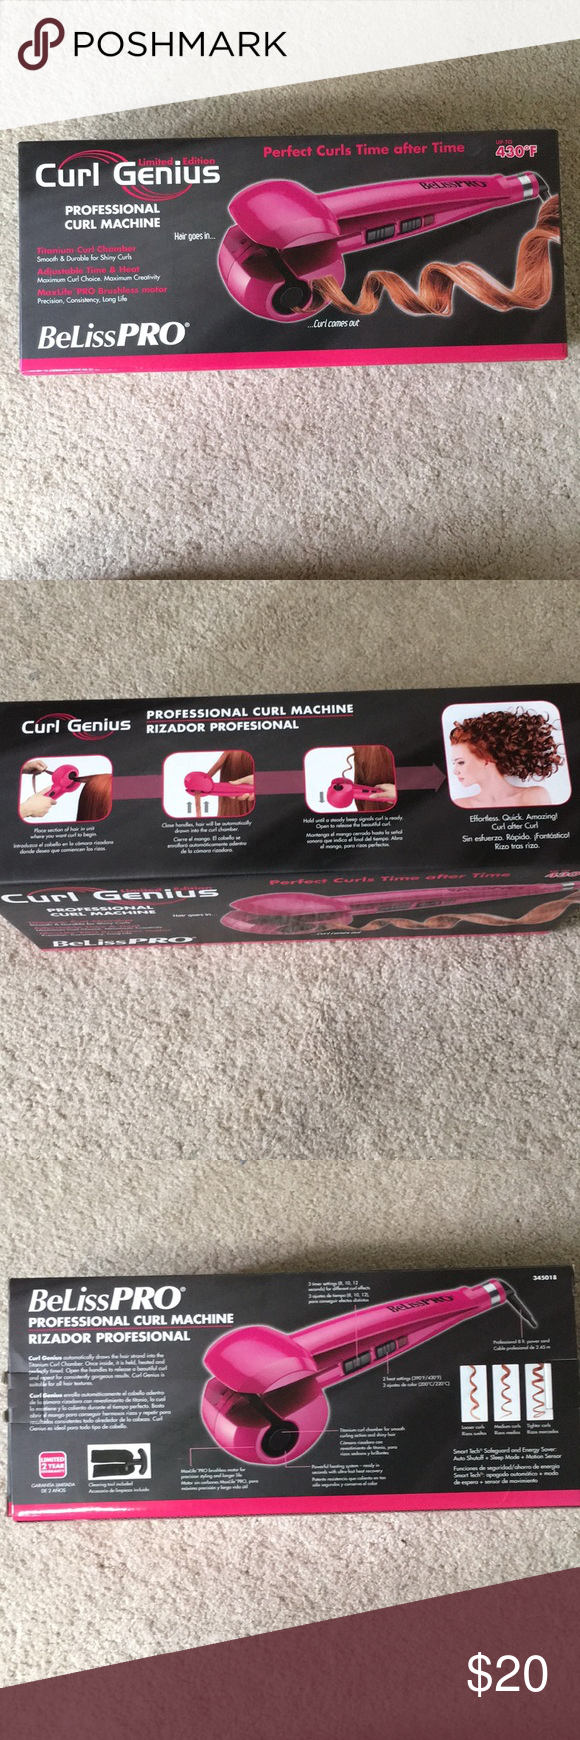 Beliss Pro Hair Curler Works Great And Good Condition There Is One Scuff On The